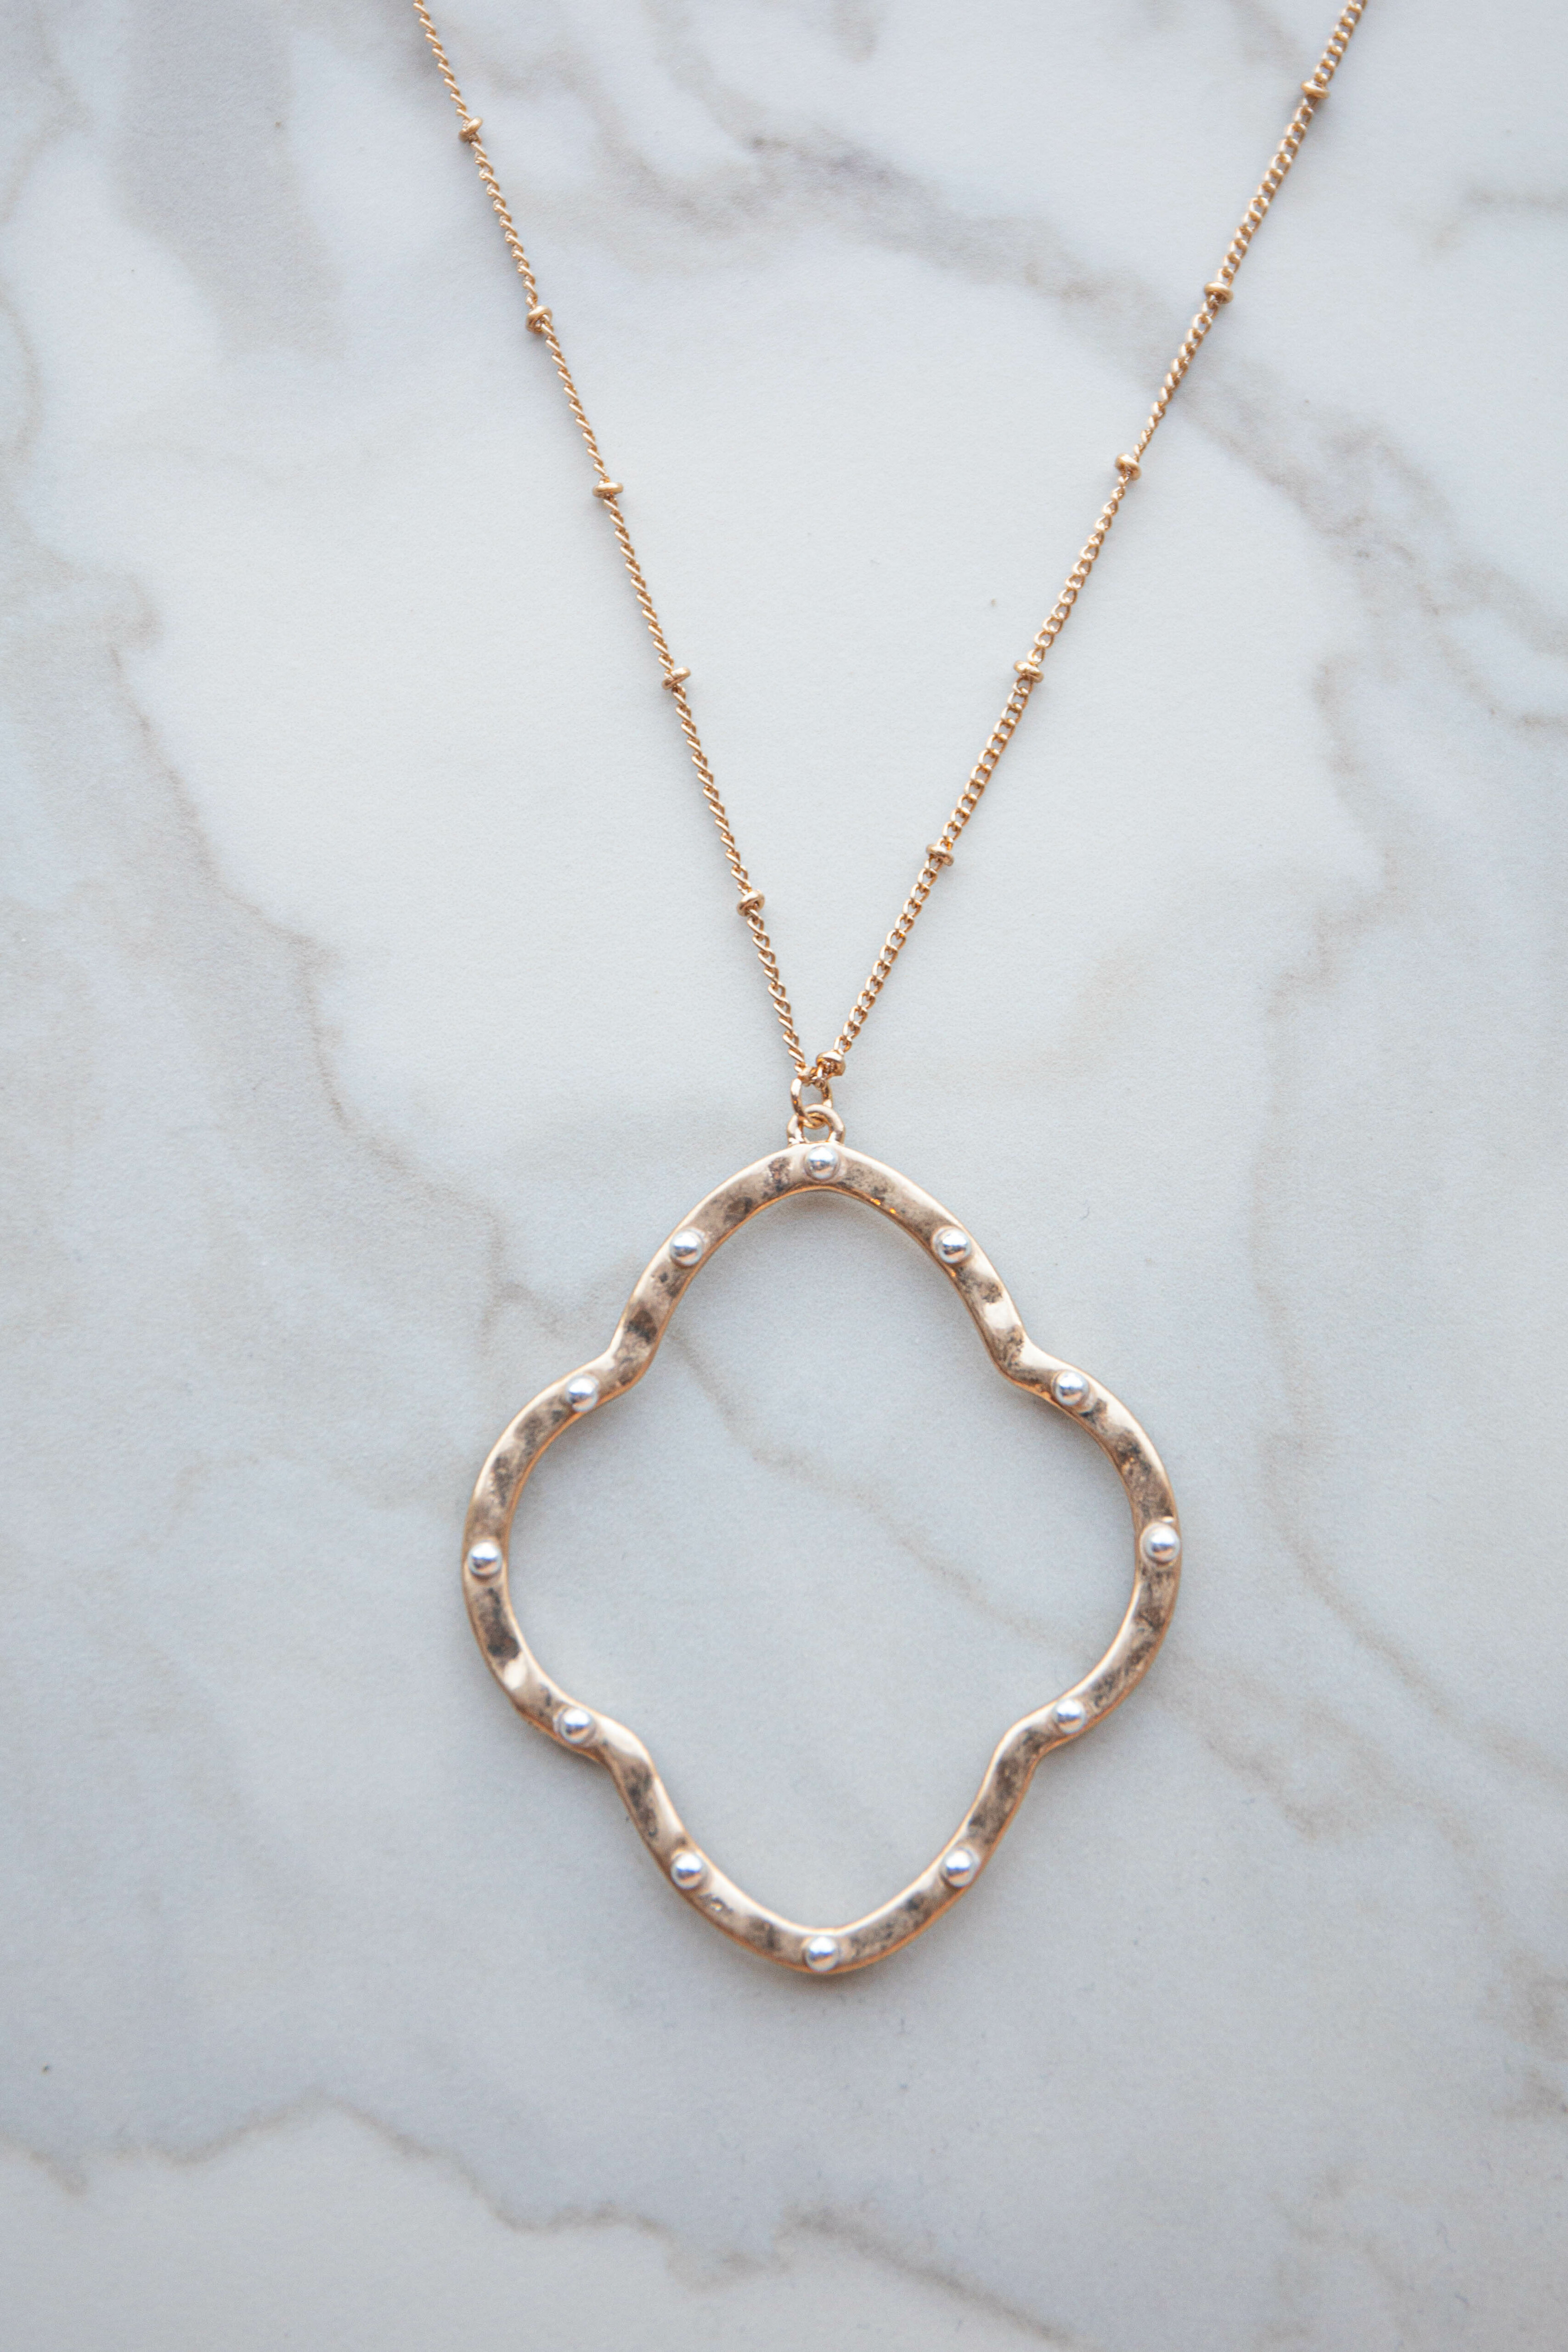 Gold Clover Pendant Necklace with Pearls